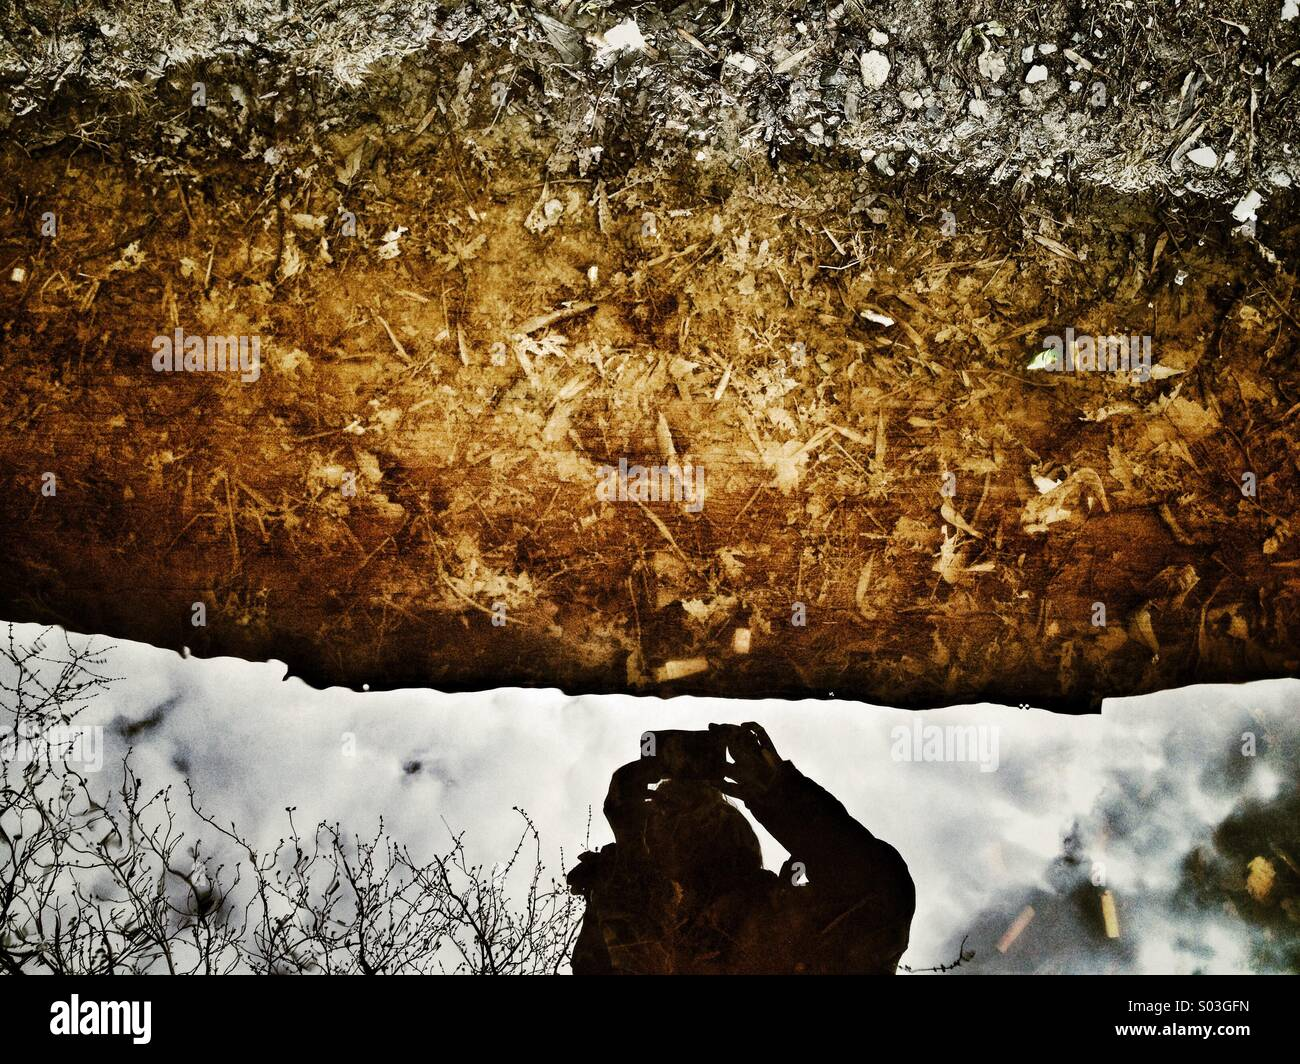 Water reflection - Stock Image